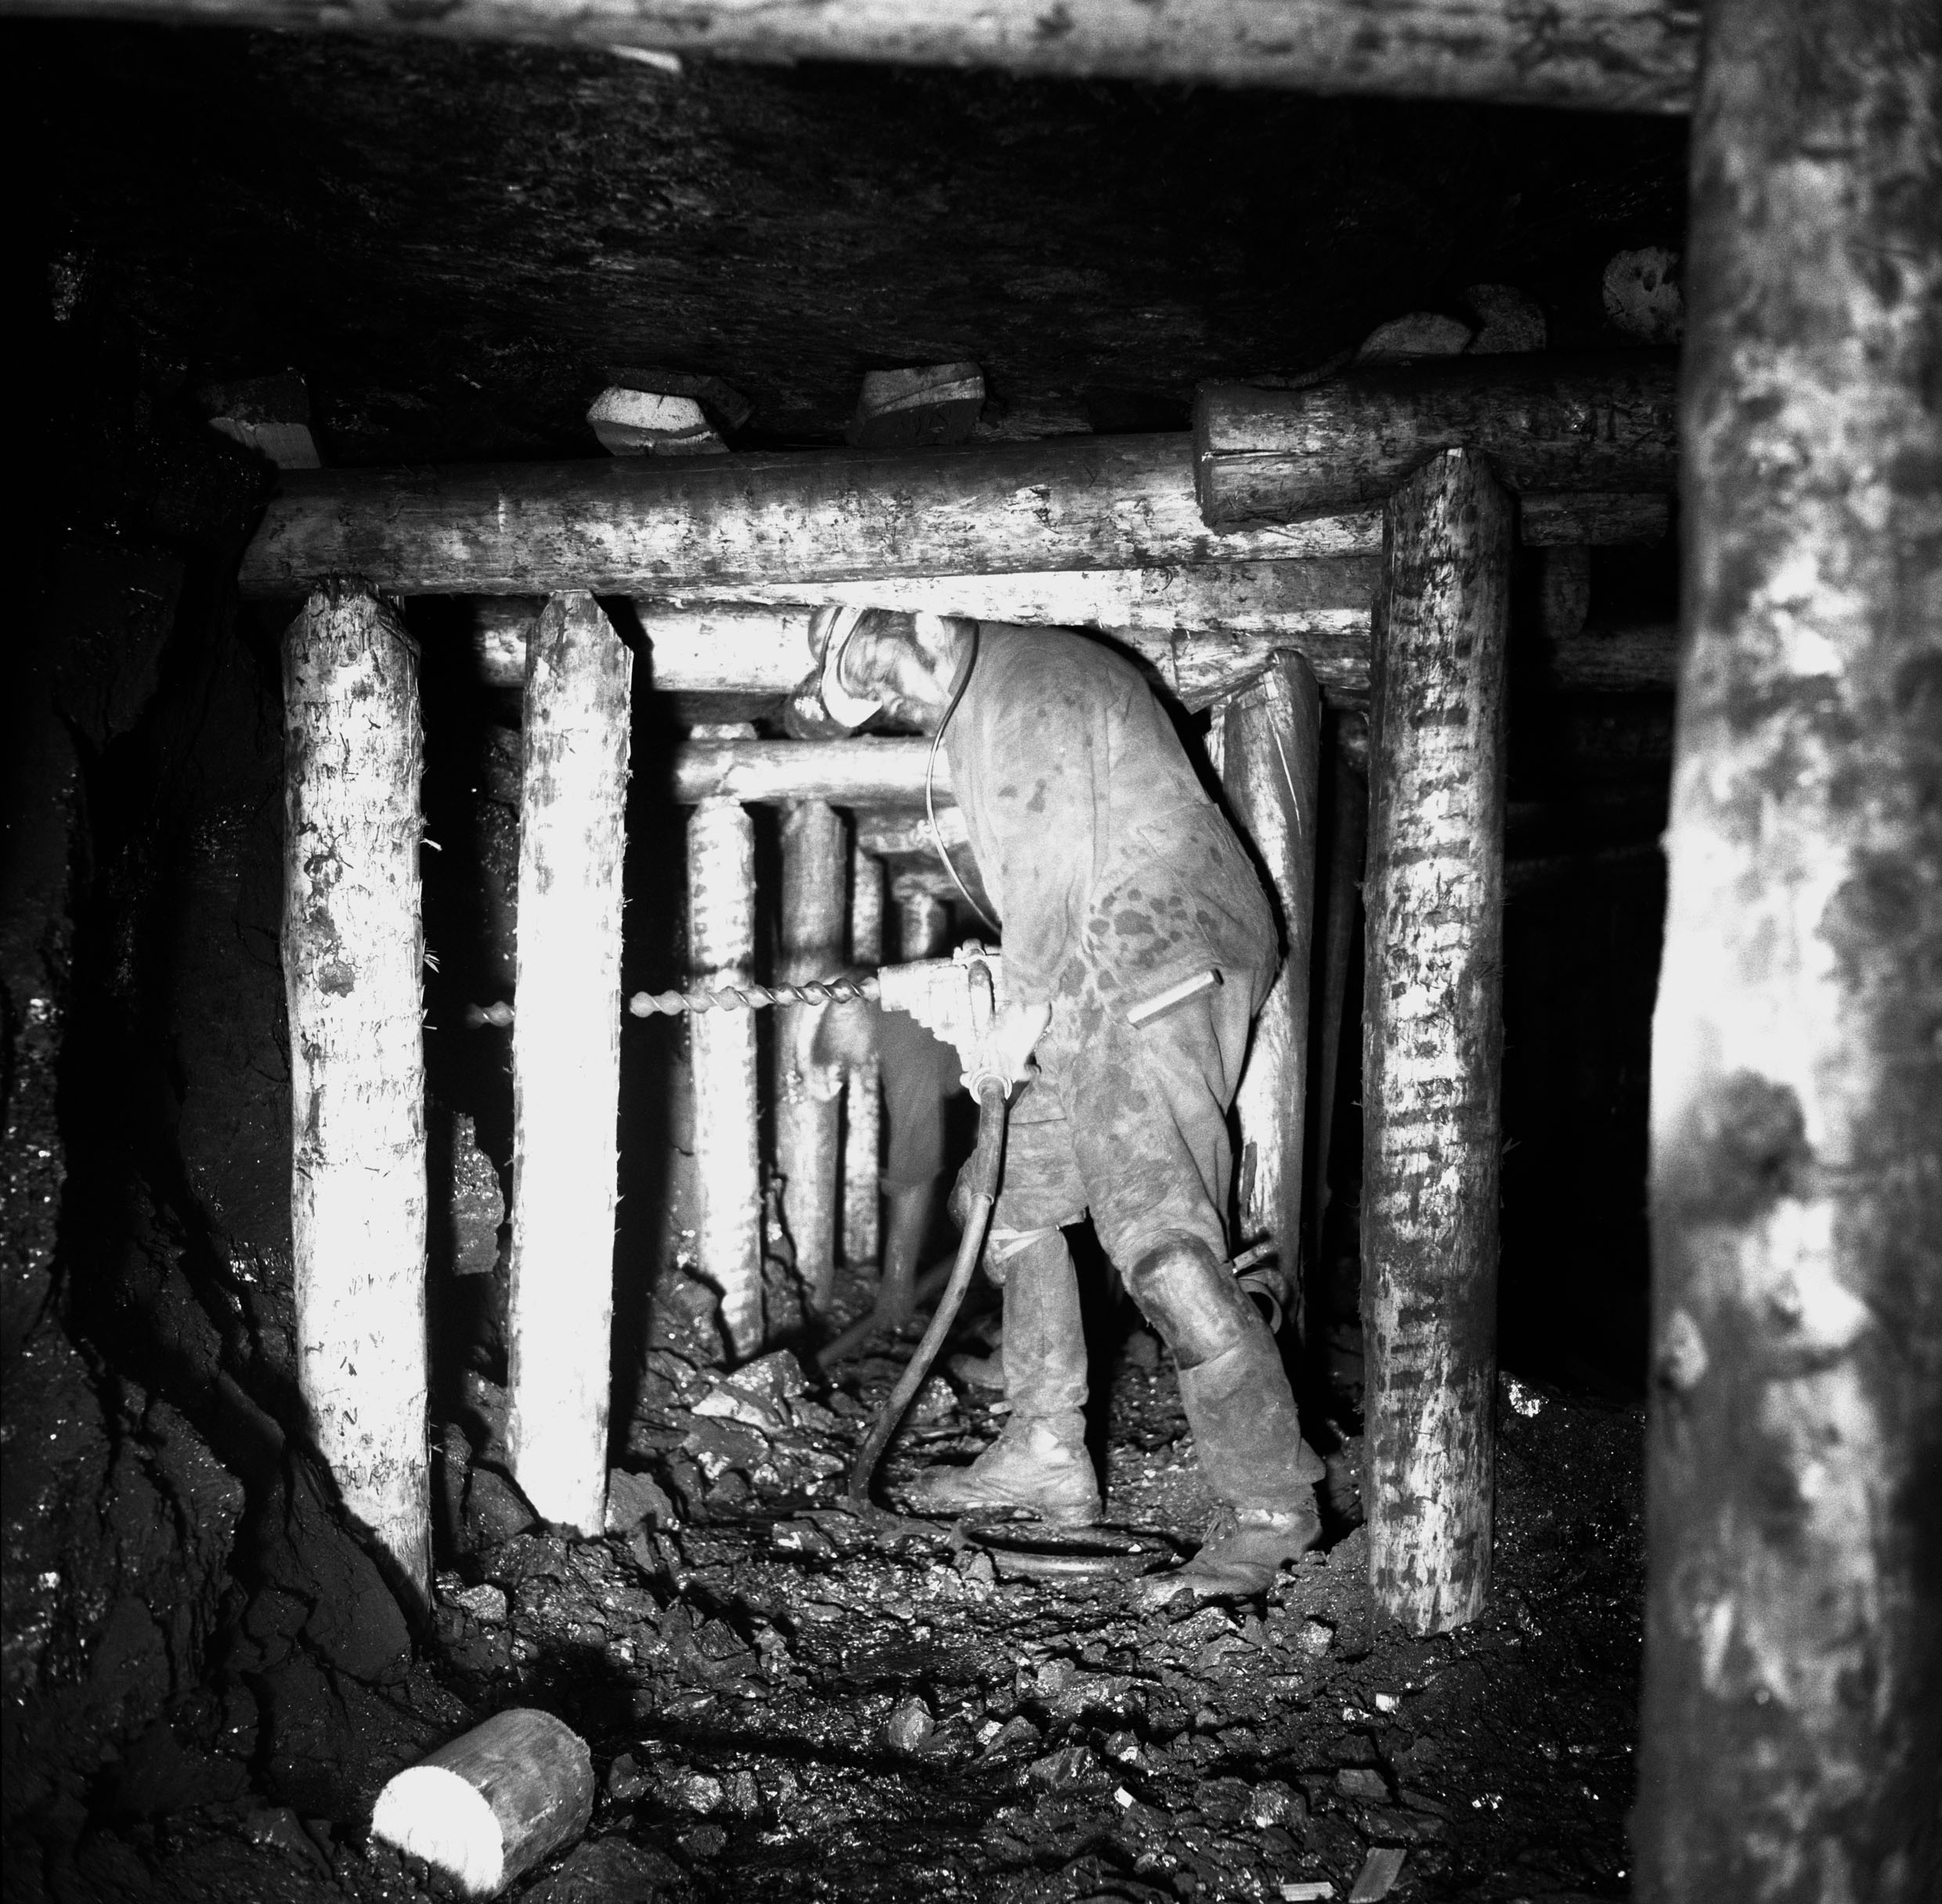 Ammanford Colliery, 1974, Gerald Gibson drilling a shot hole on the coal face.